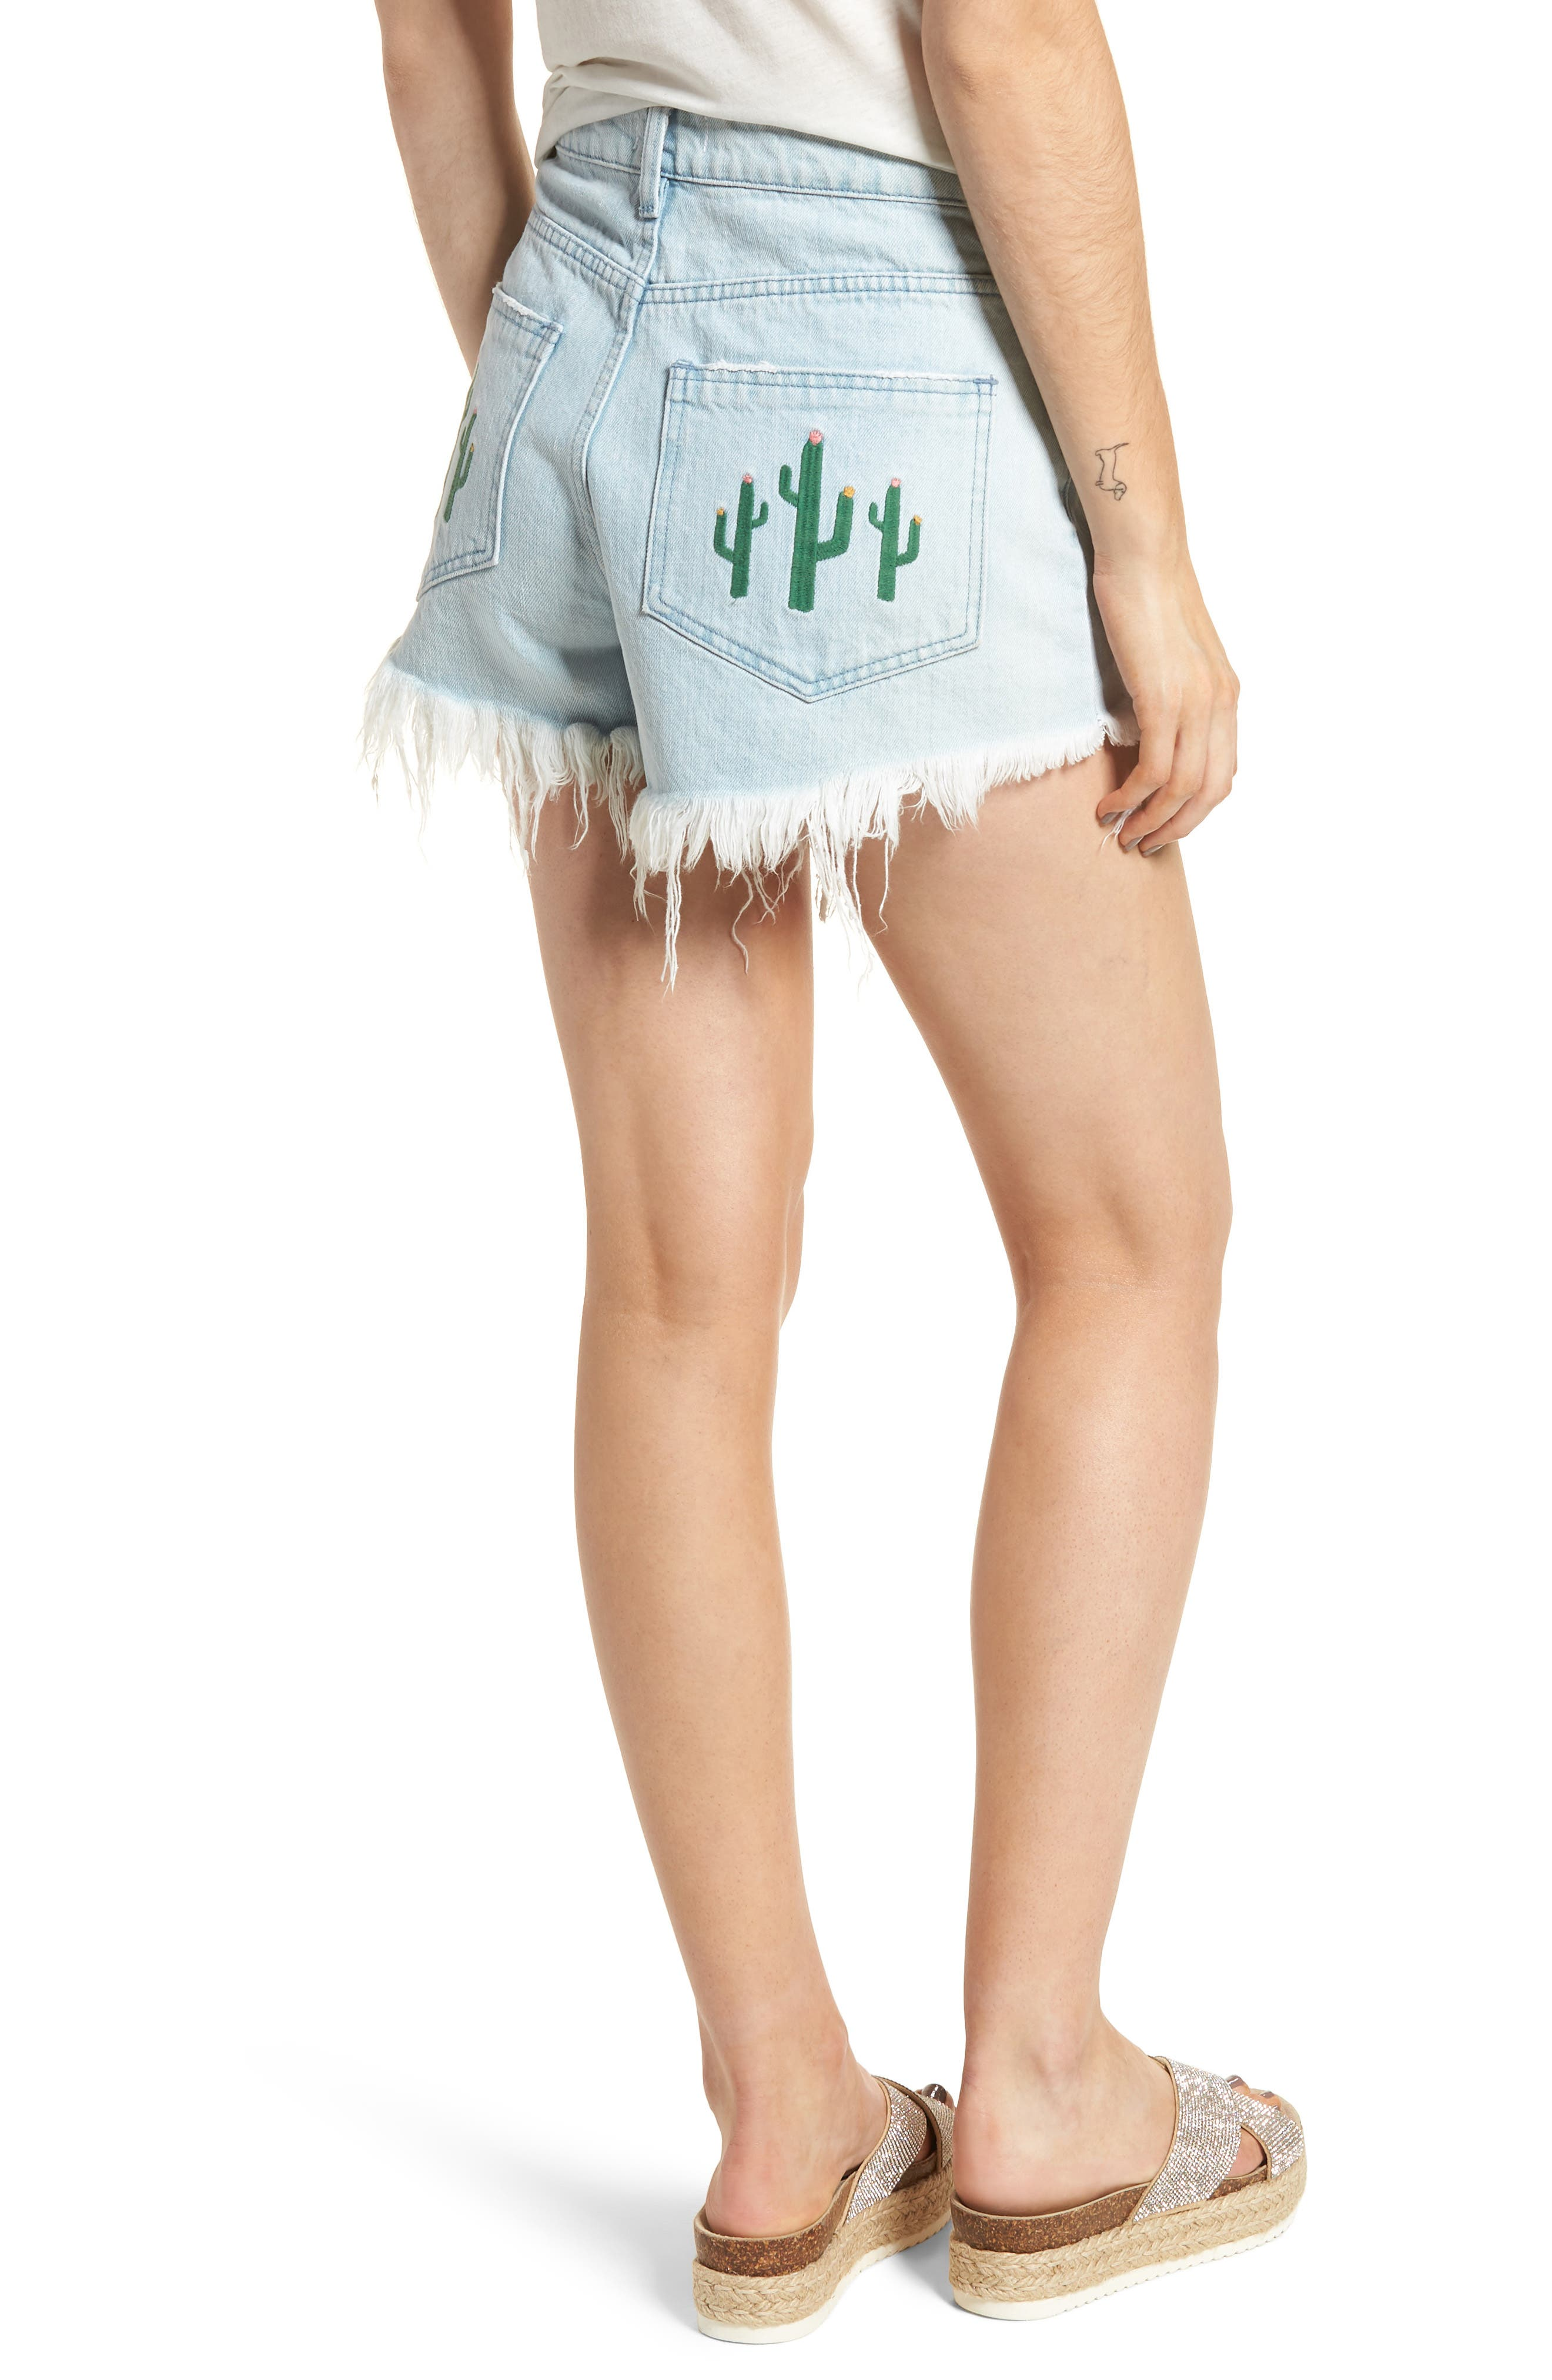 Wyoming High Waist Cutoff Denim Shorts,                             Alternate thumbnail 2, color,                             WHITEWATER WITH CACTUS